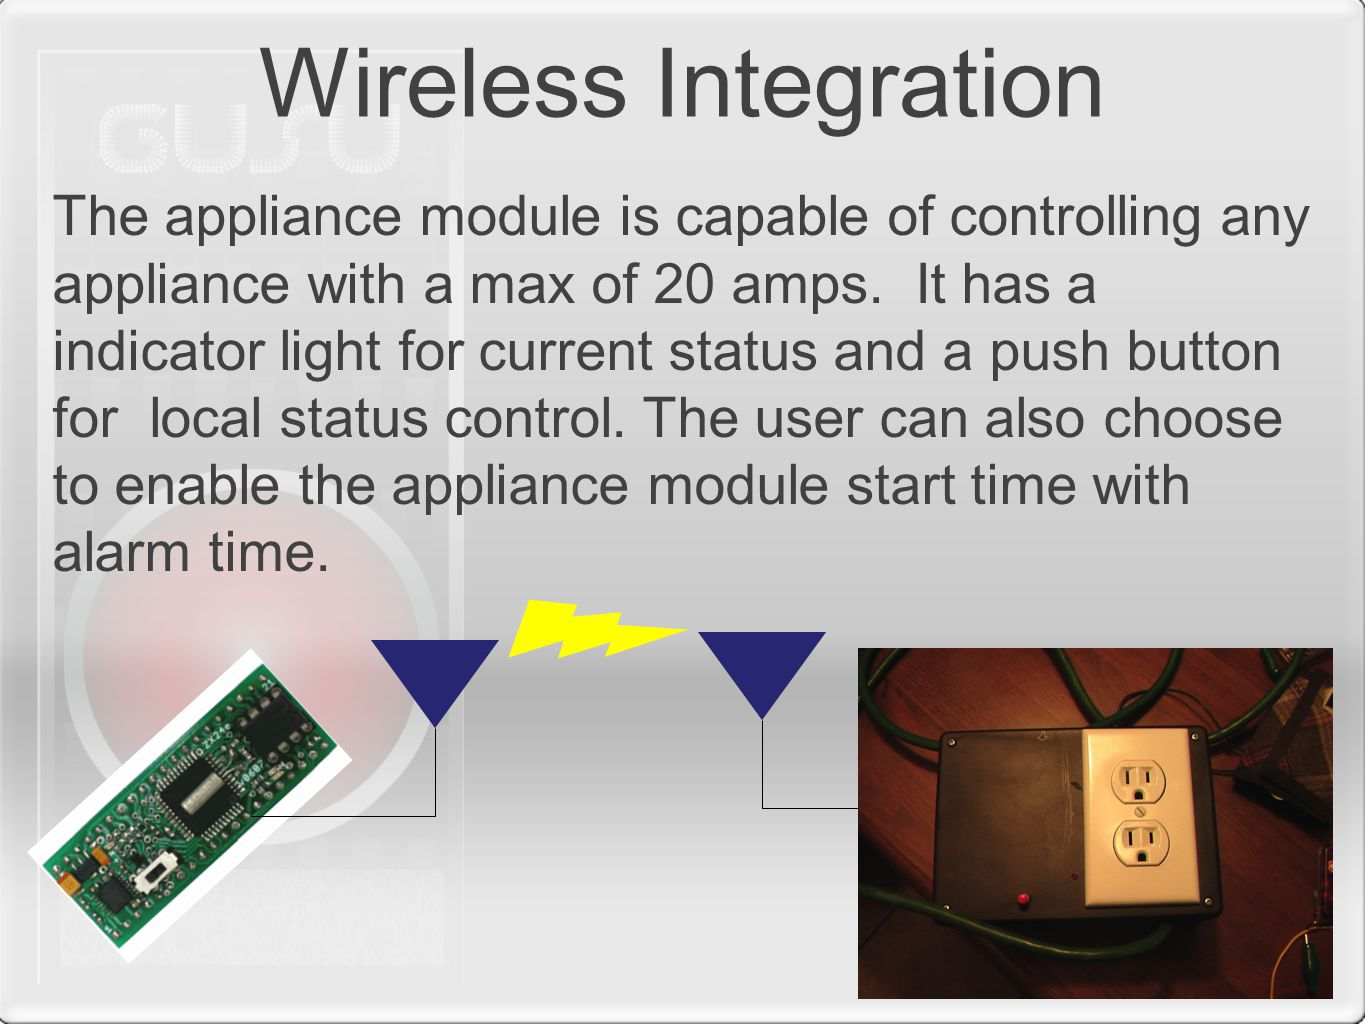 The appliance module is capable of controlling any appliance with a max of 20 amps.